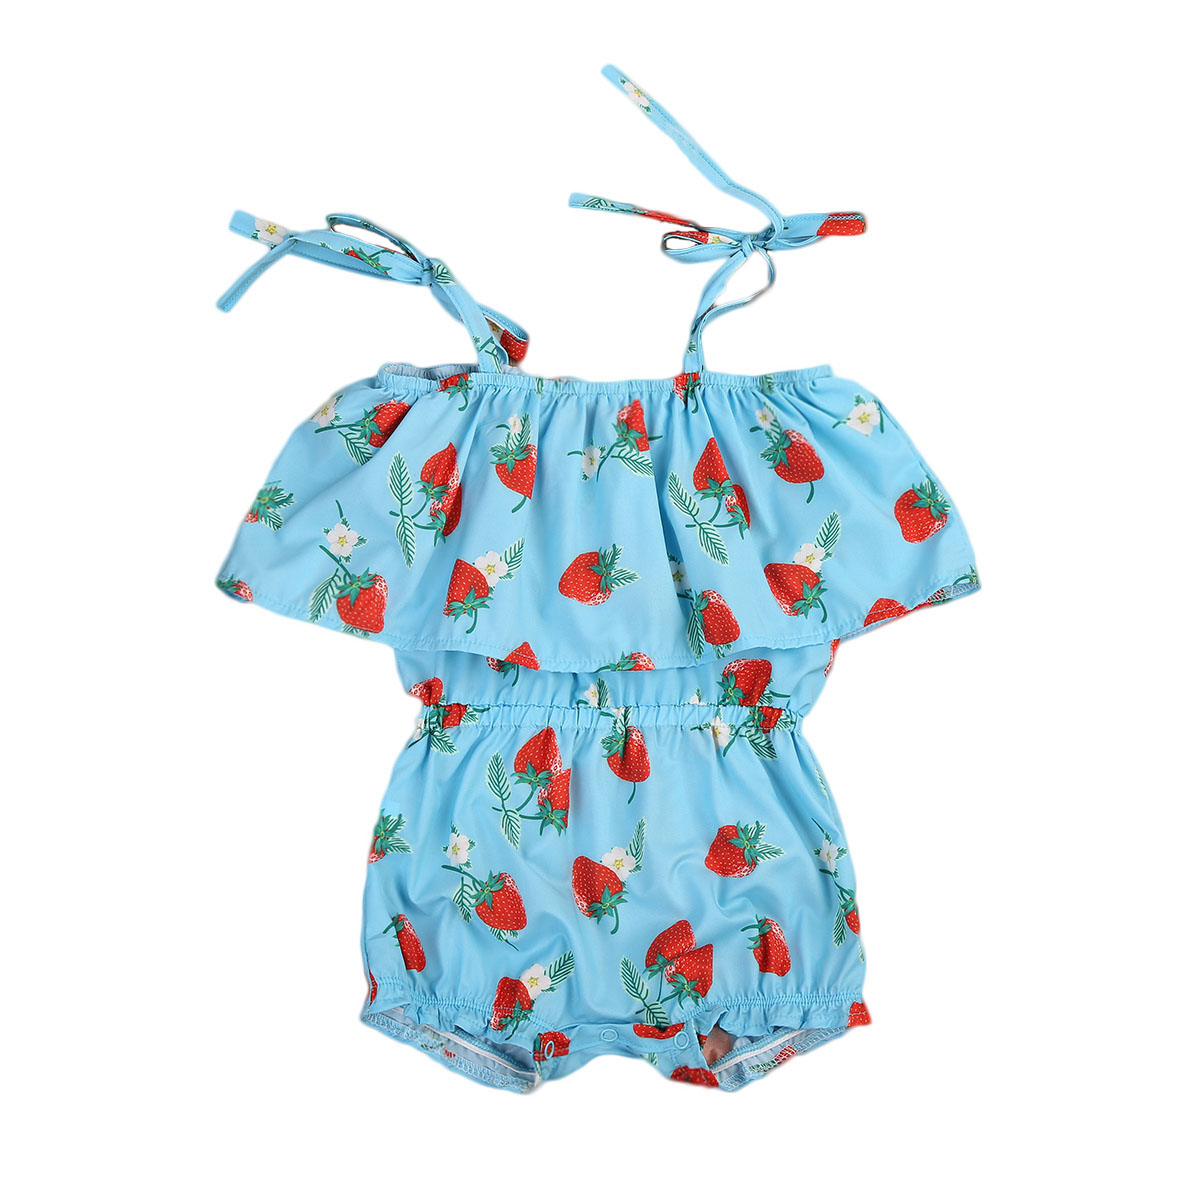 Summer Strawberry Onesie Outfit Newborn Baby Girls Romper Strap Off Shlouder Jumpsuit Playsuit Sunsuit Clothing newborn infant baby clothes girl sleeveless floral romper jumpsuit playsuit outfit summer girls clothing cotton baby onesie